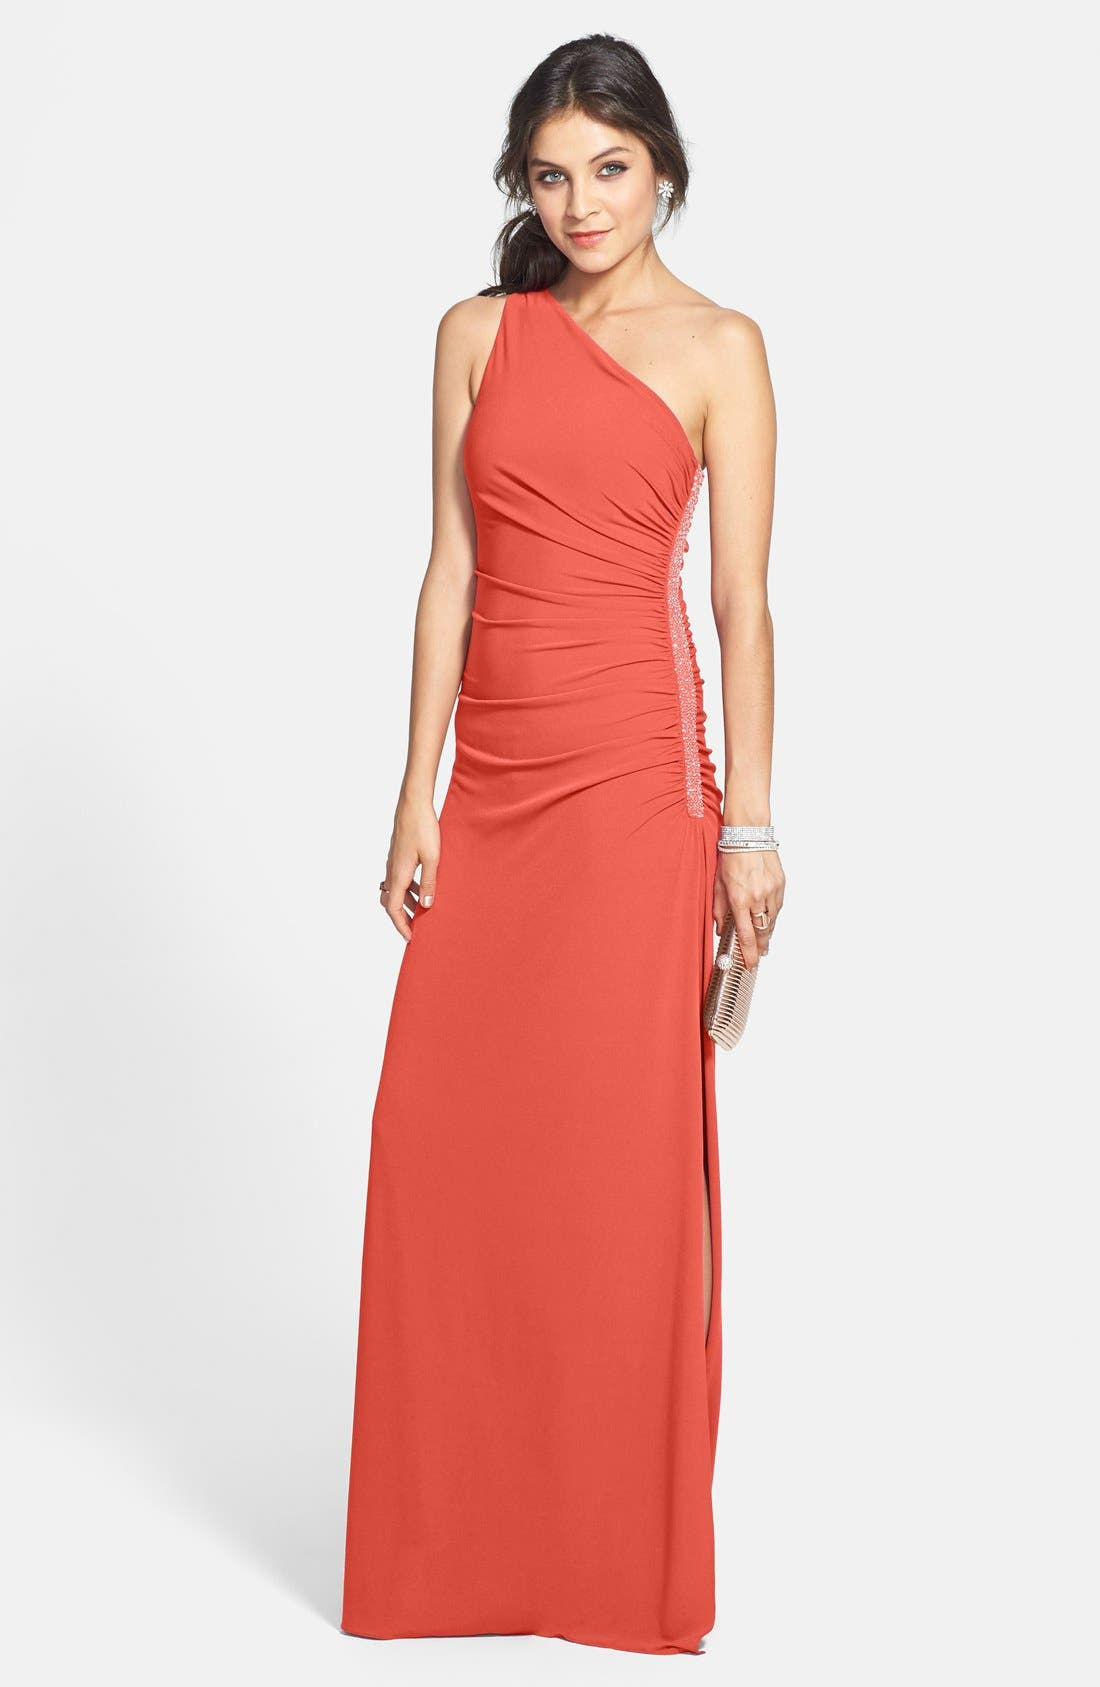 Main Image - Laundry by Shelli Segal Beaded Panel One-Shoulder Jersey Gown (Regular & Petite)